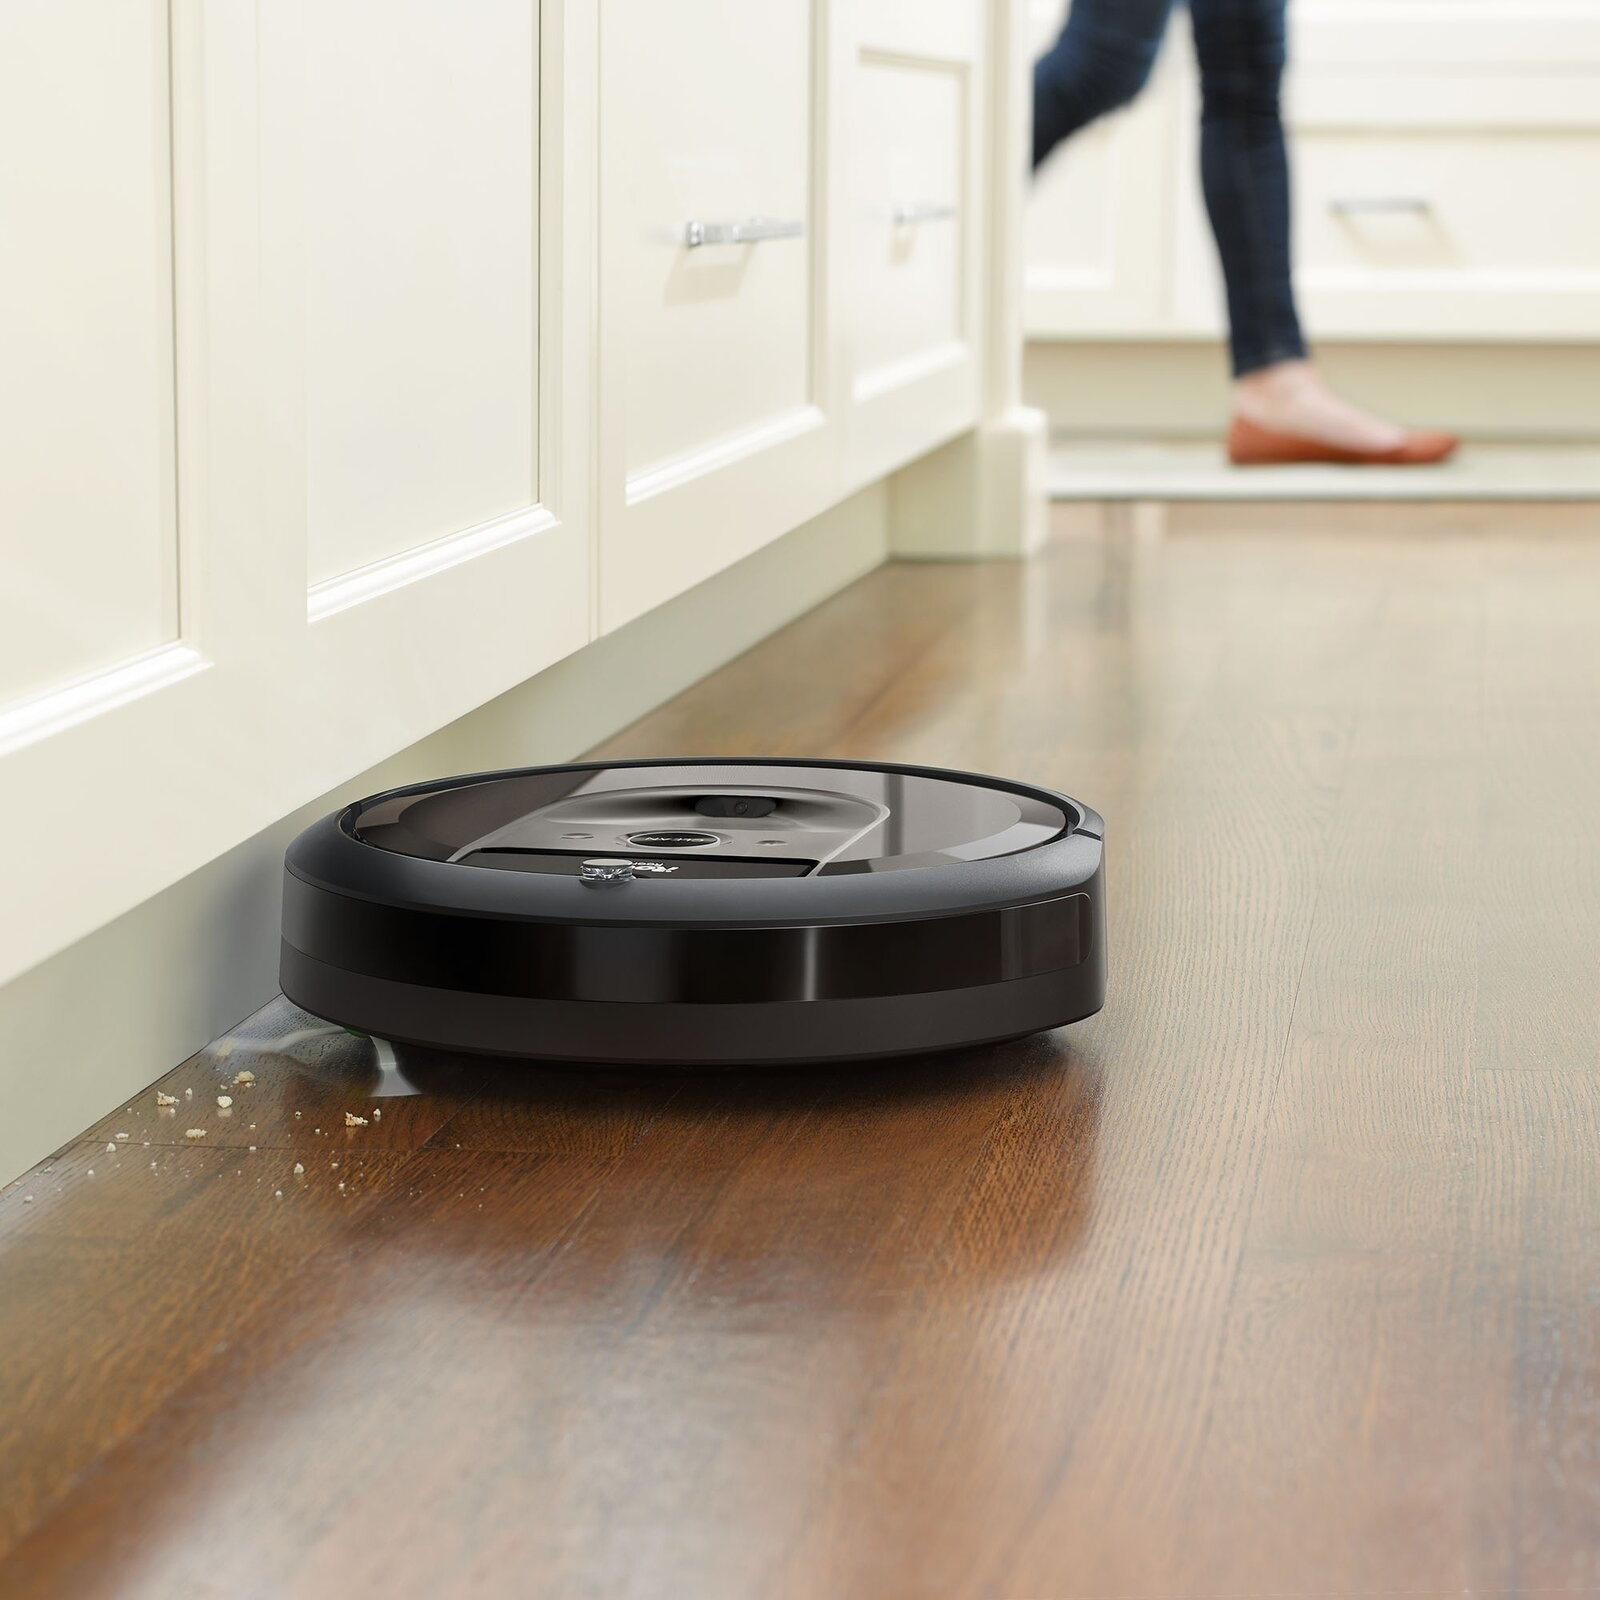 The Roomba, which is circular and has small brushes that extend from it to clean